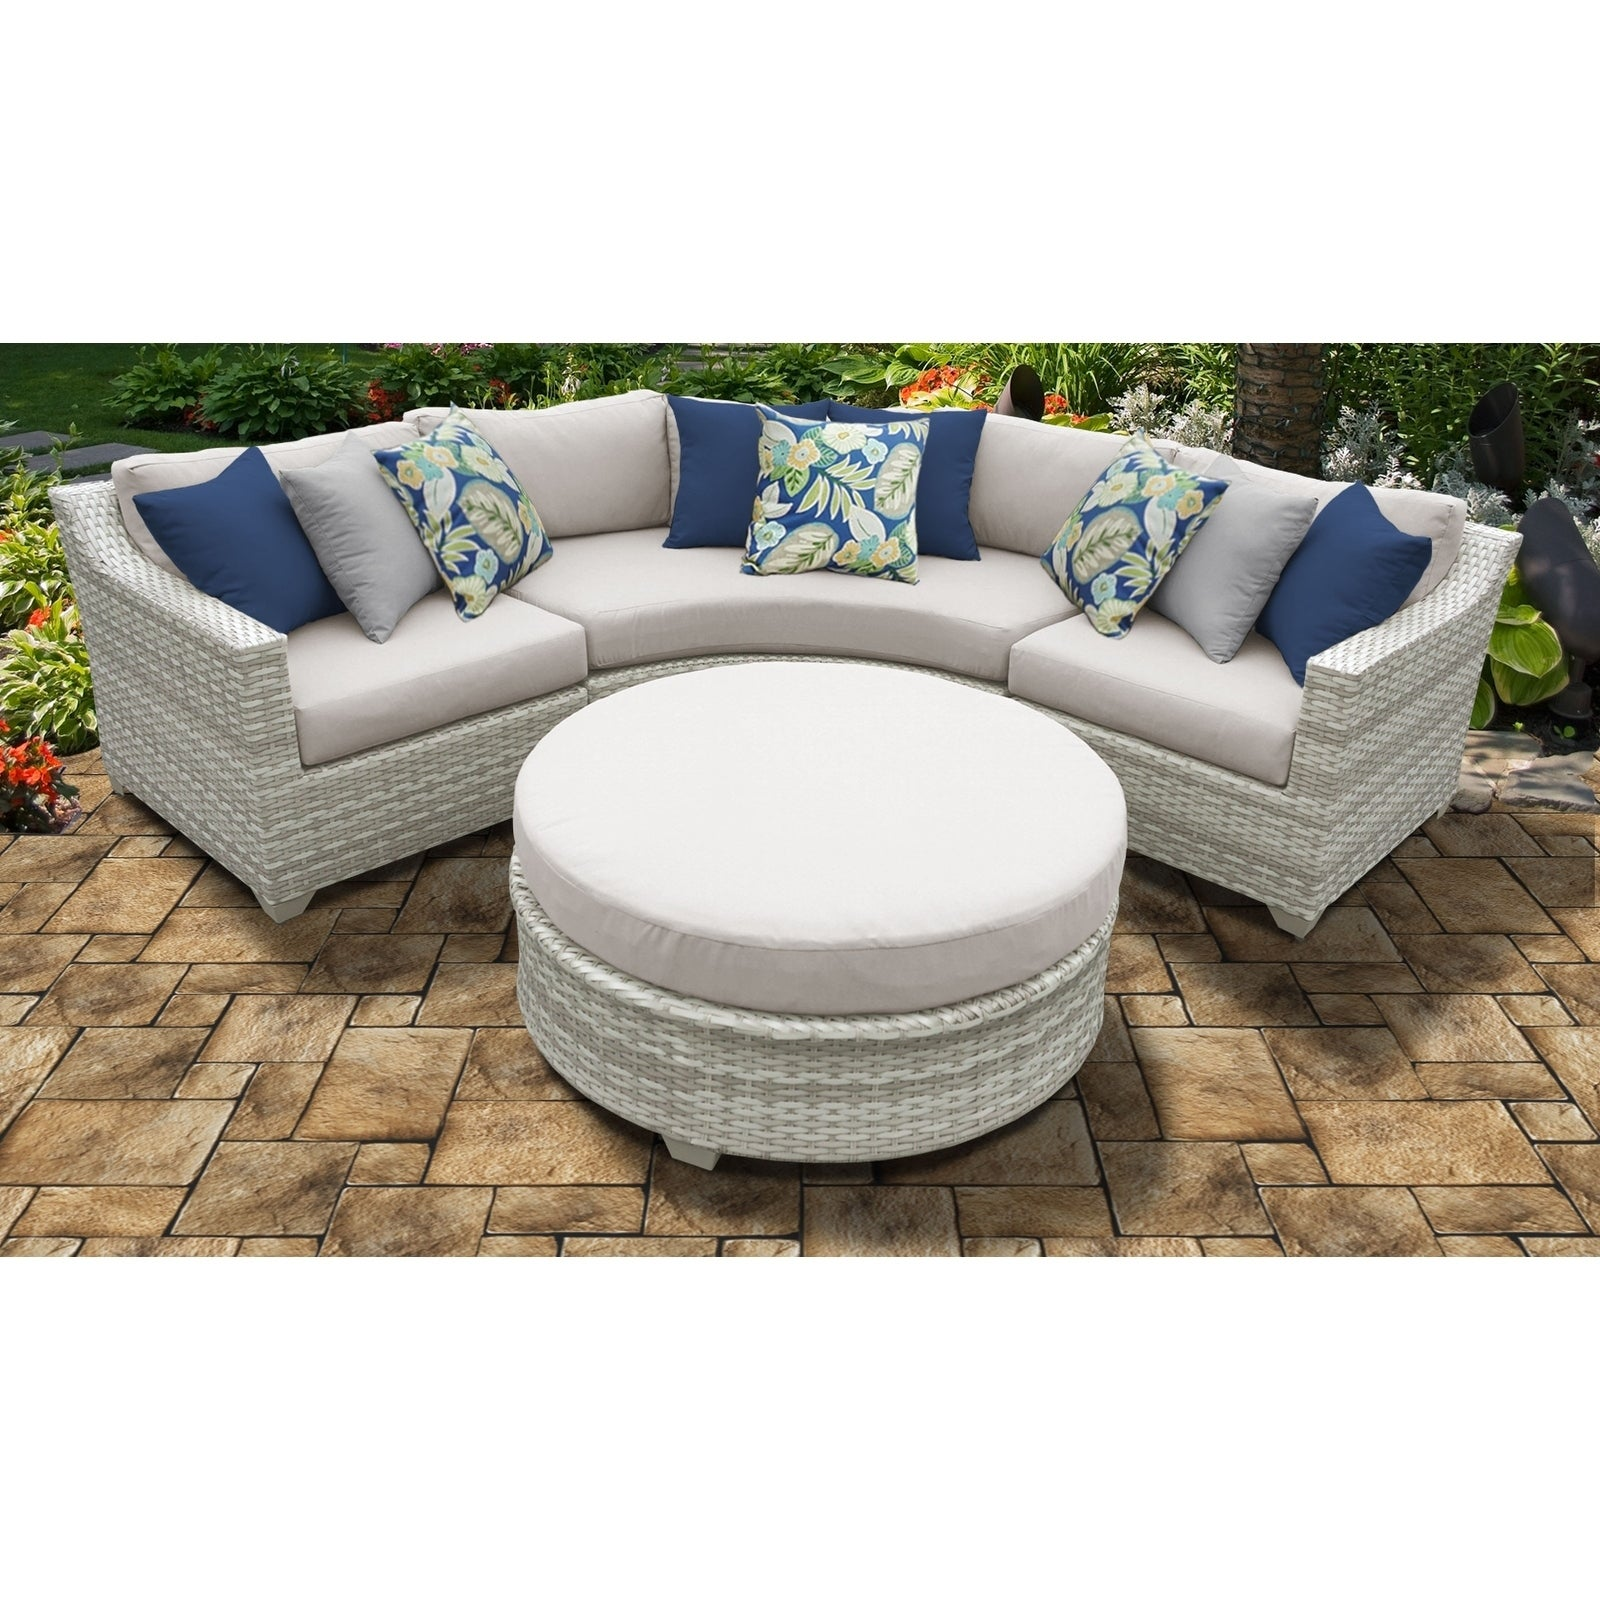 Fairmont Patio Furniture.Details About Fairmont 4 Piece Outdoor Wicker Patio Furniture Set 04a